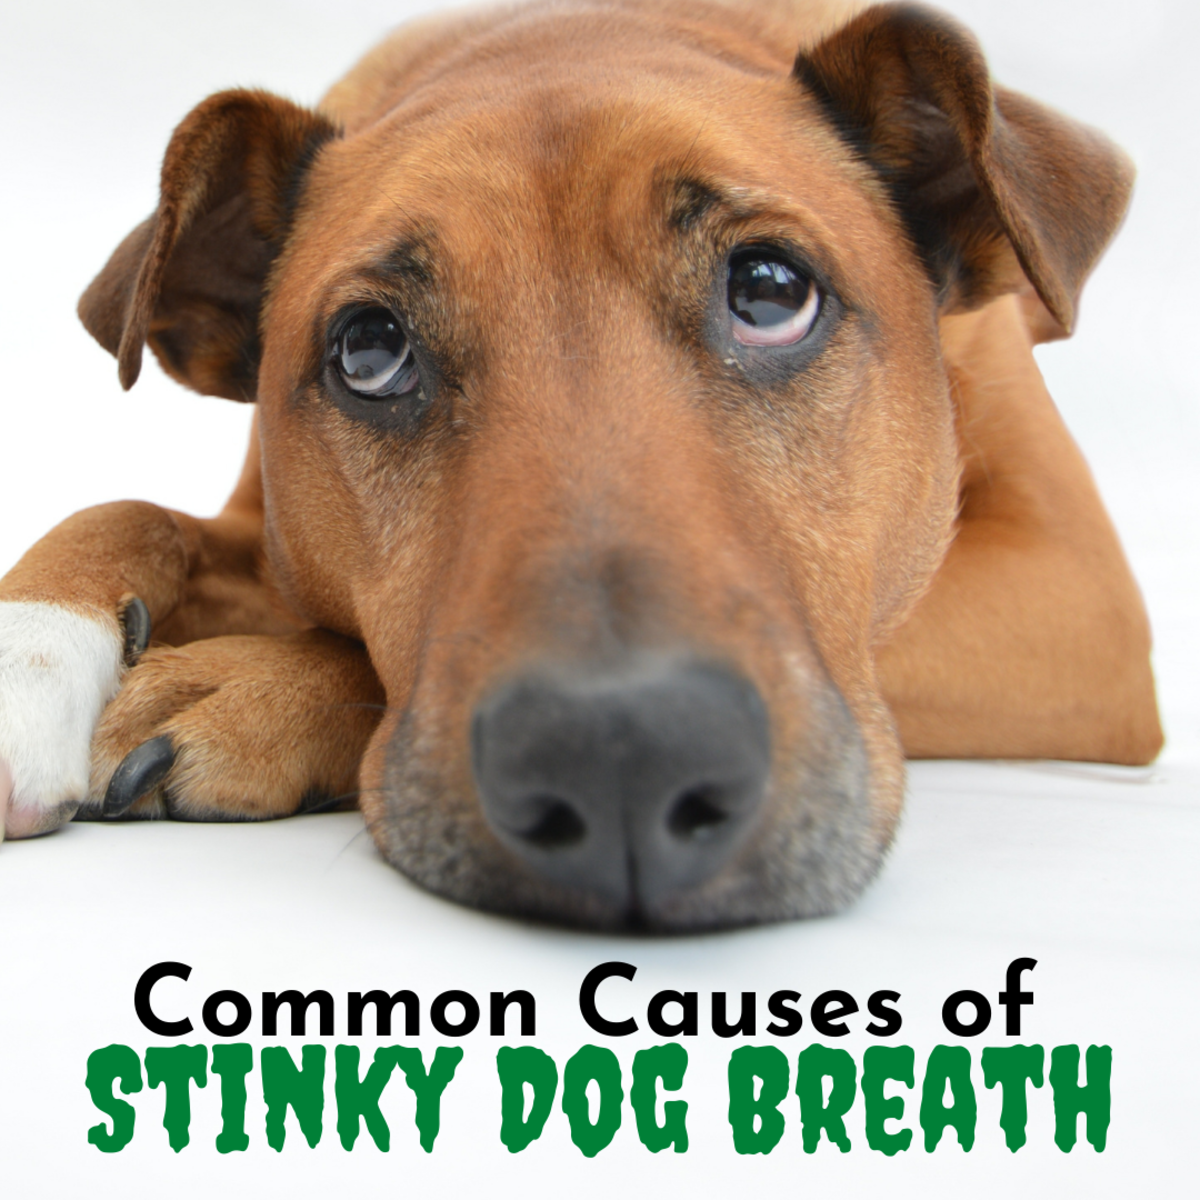 Does your dog have stinky breath? It may be time to take your pup to the vet.